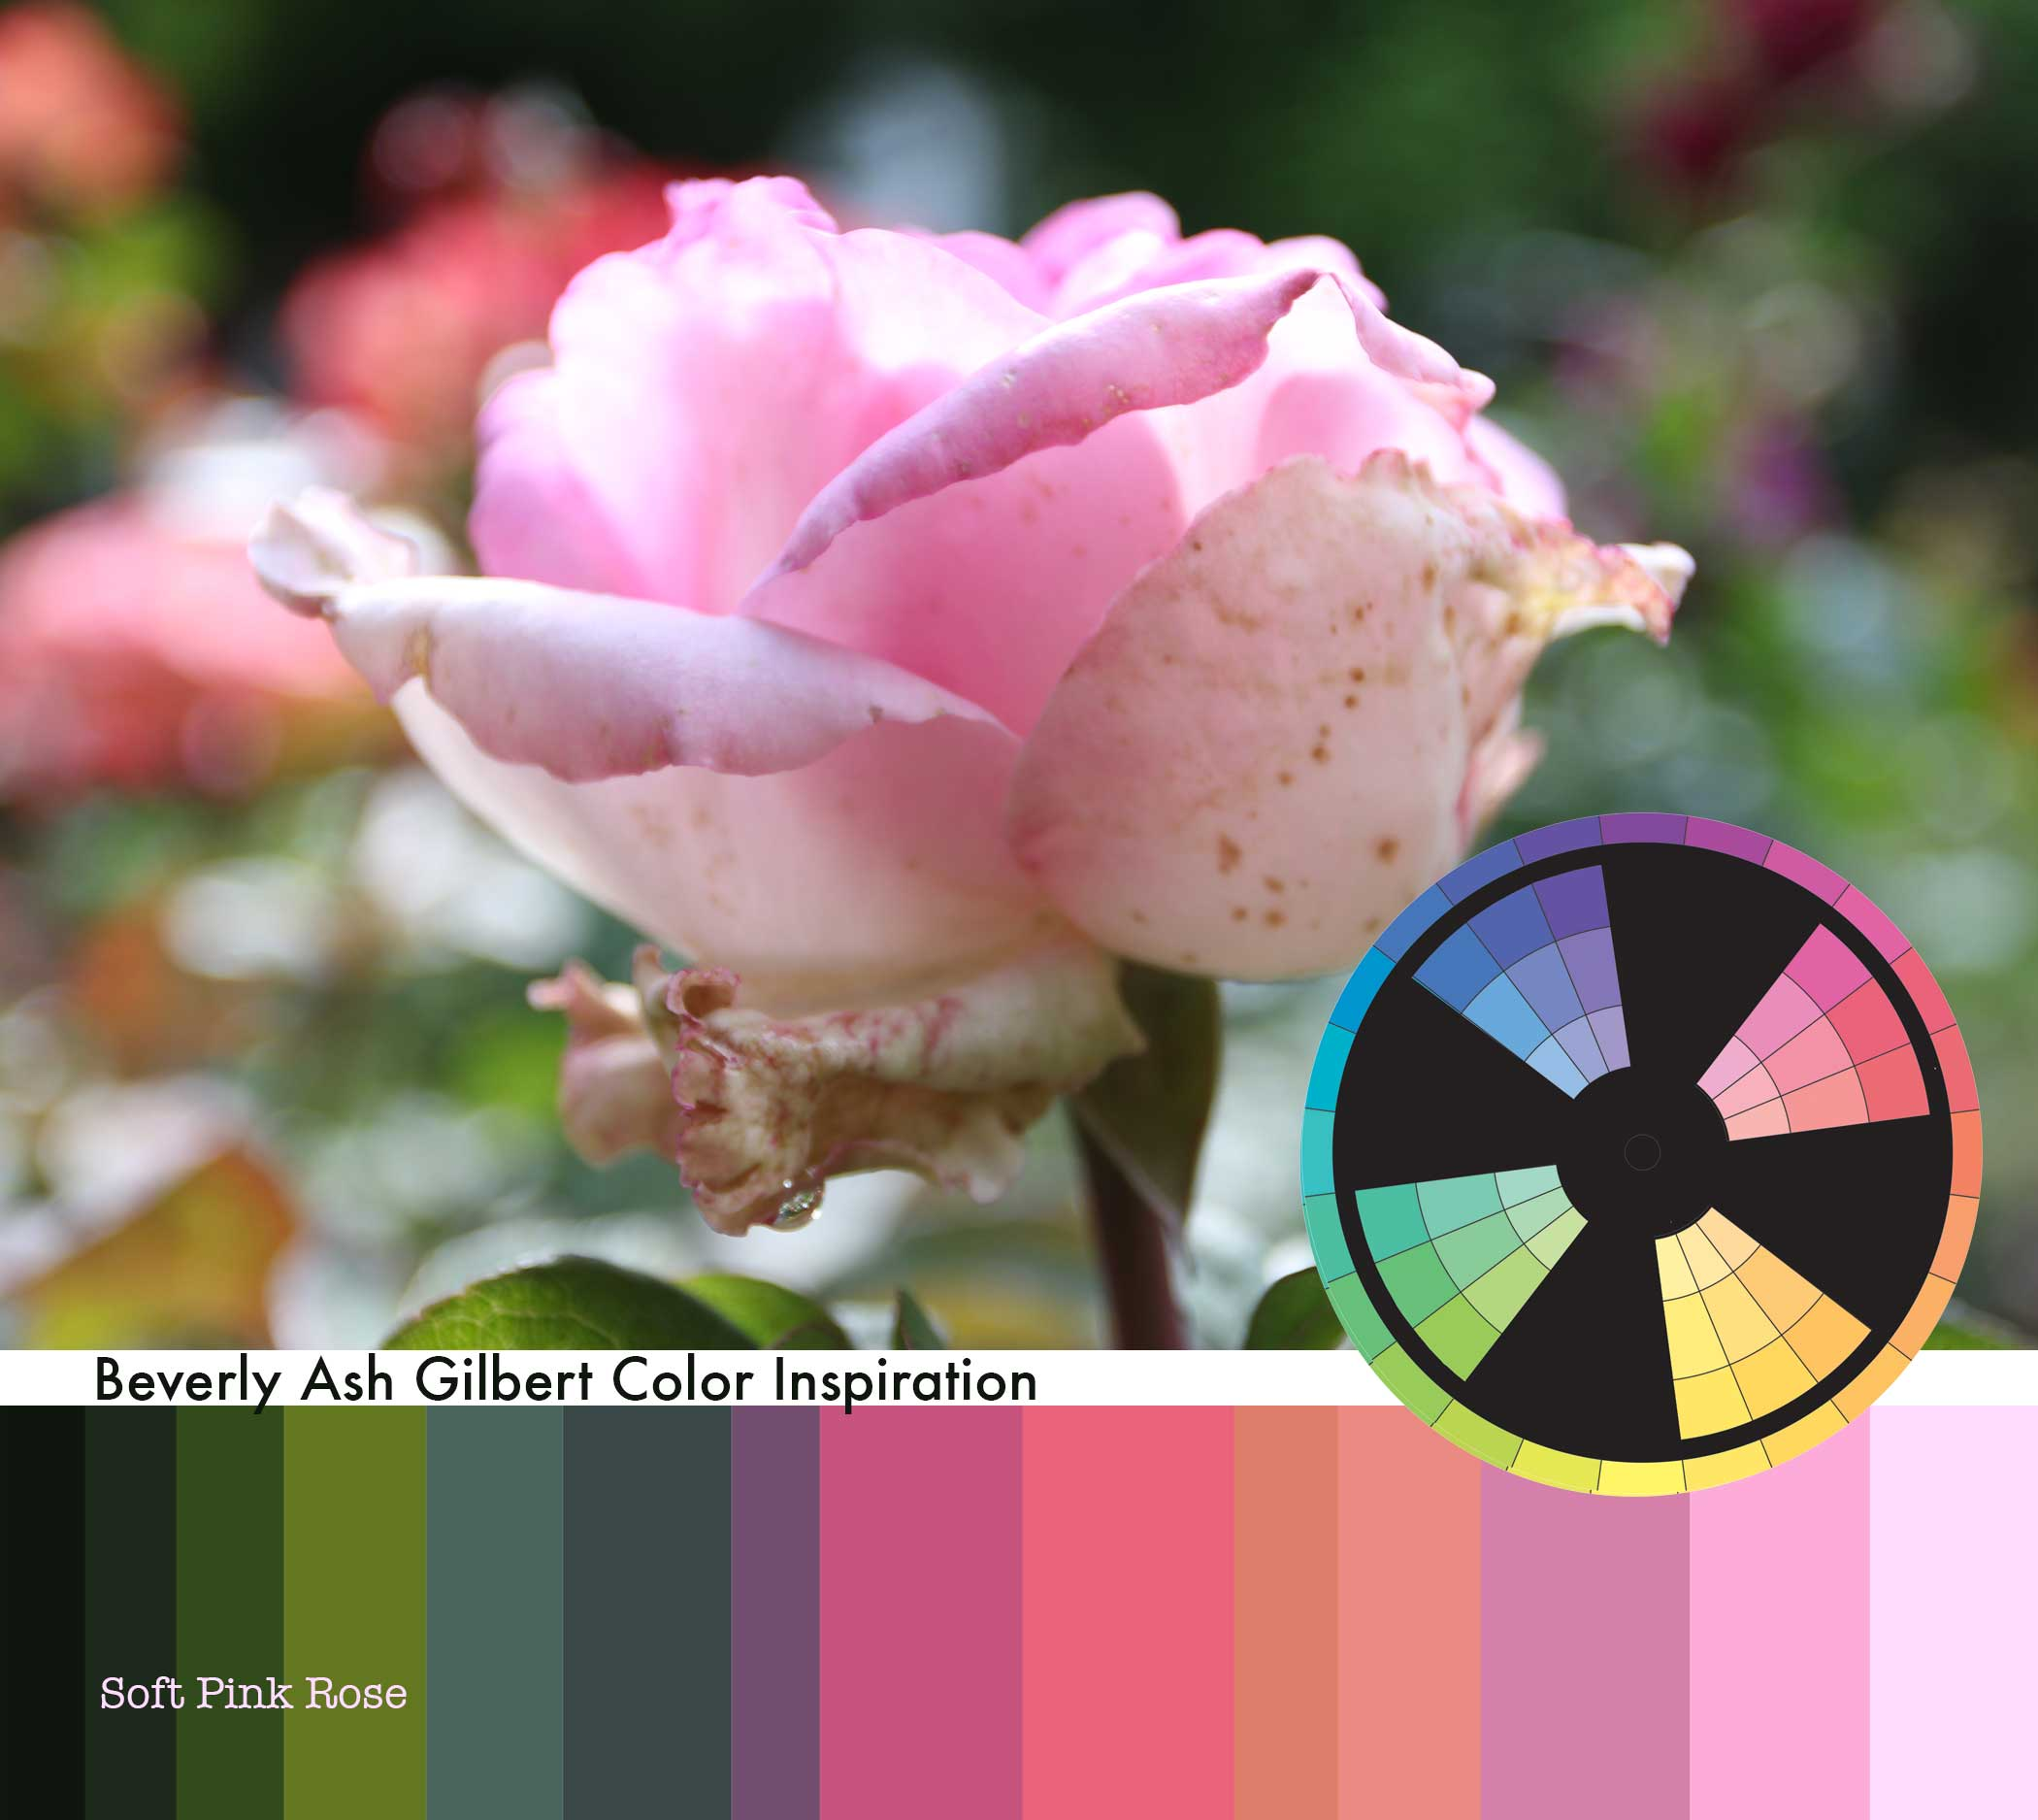 ColorInspiration_SoftPinkRose_small.jpg